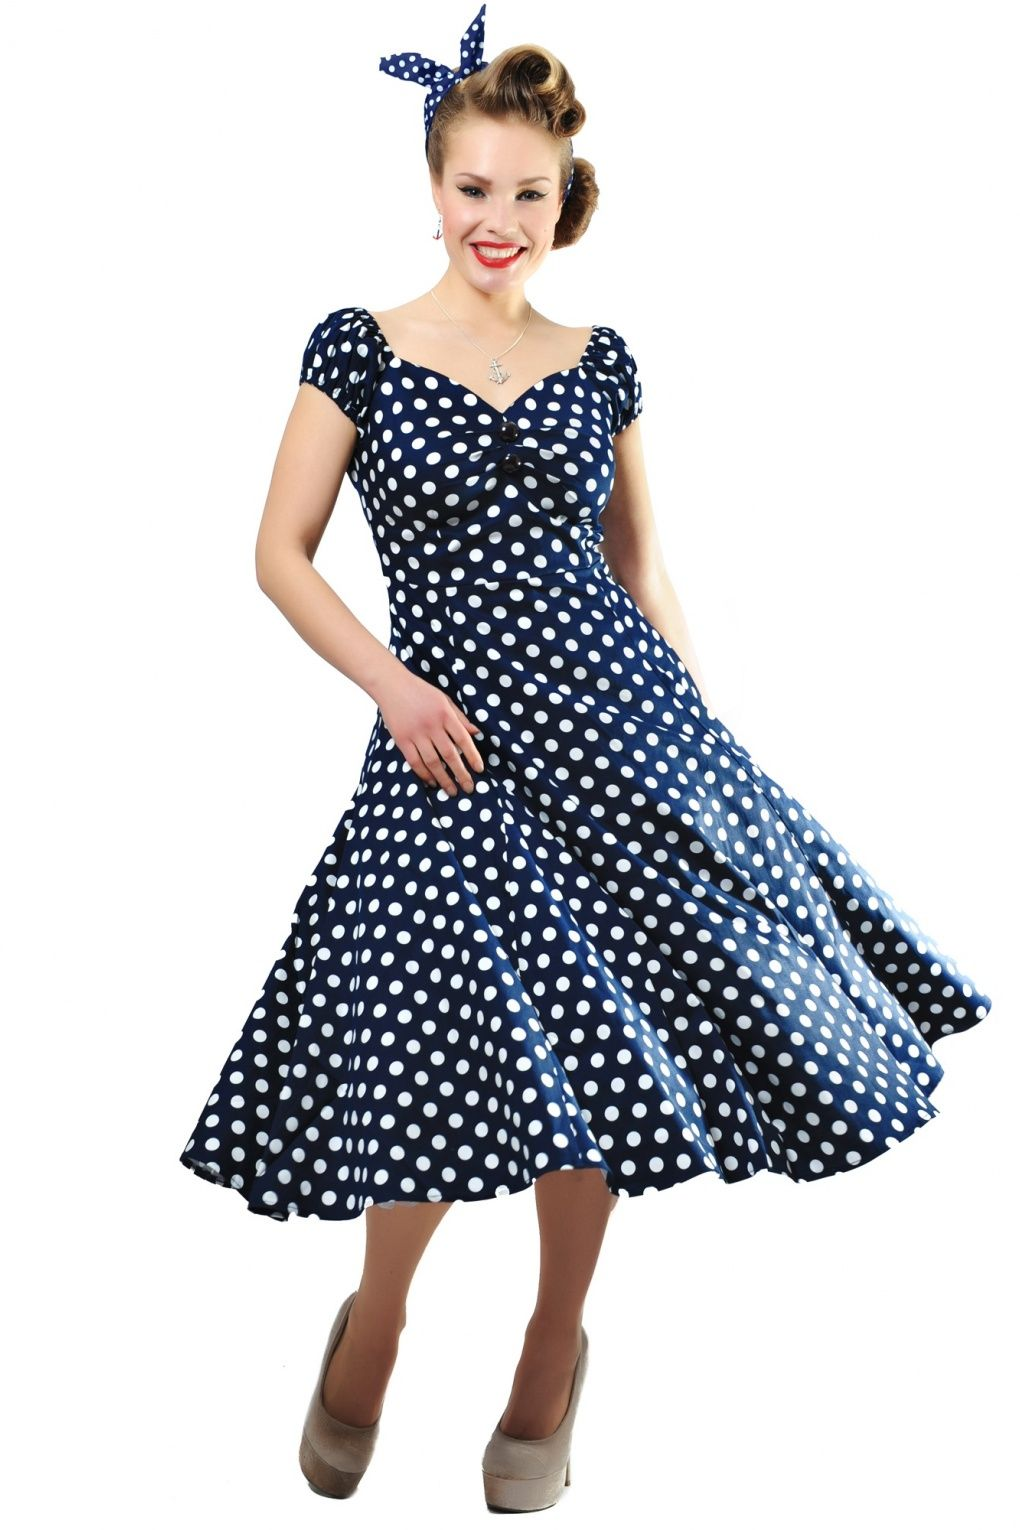 766337489f1108 Collectif Clothing - 50s Dolores Doll dress Navy White polka swing dress